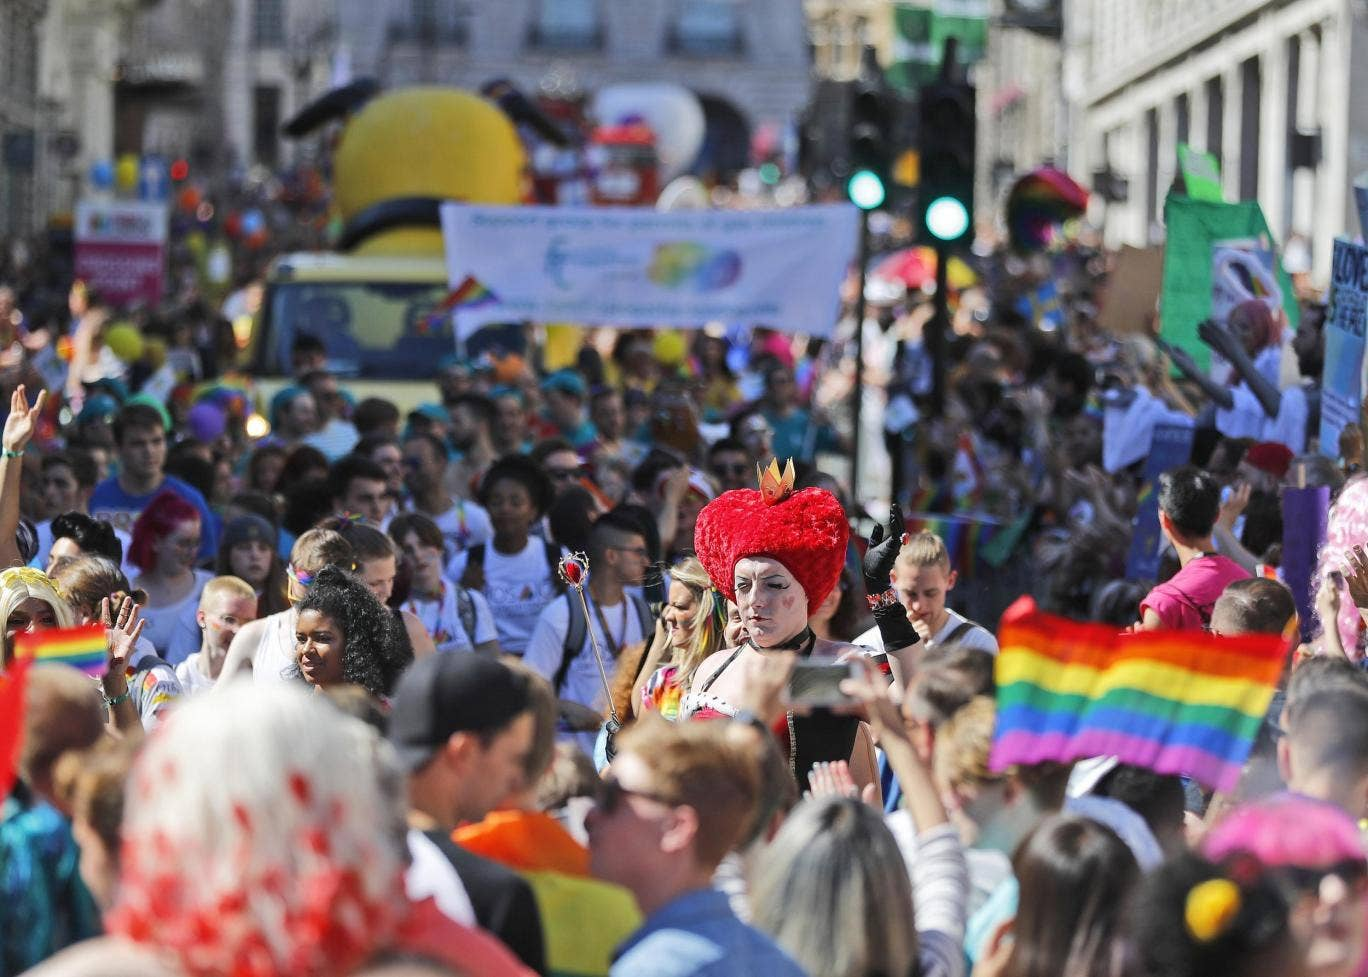 Evangelical protestants and homosexuality